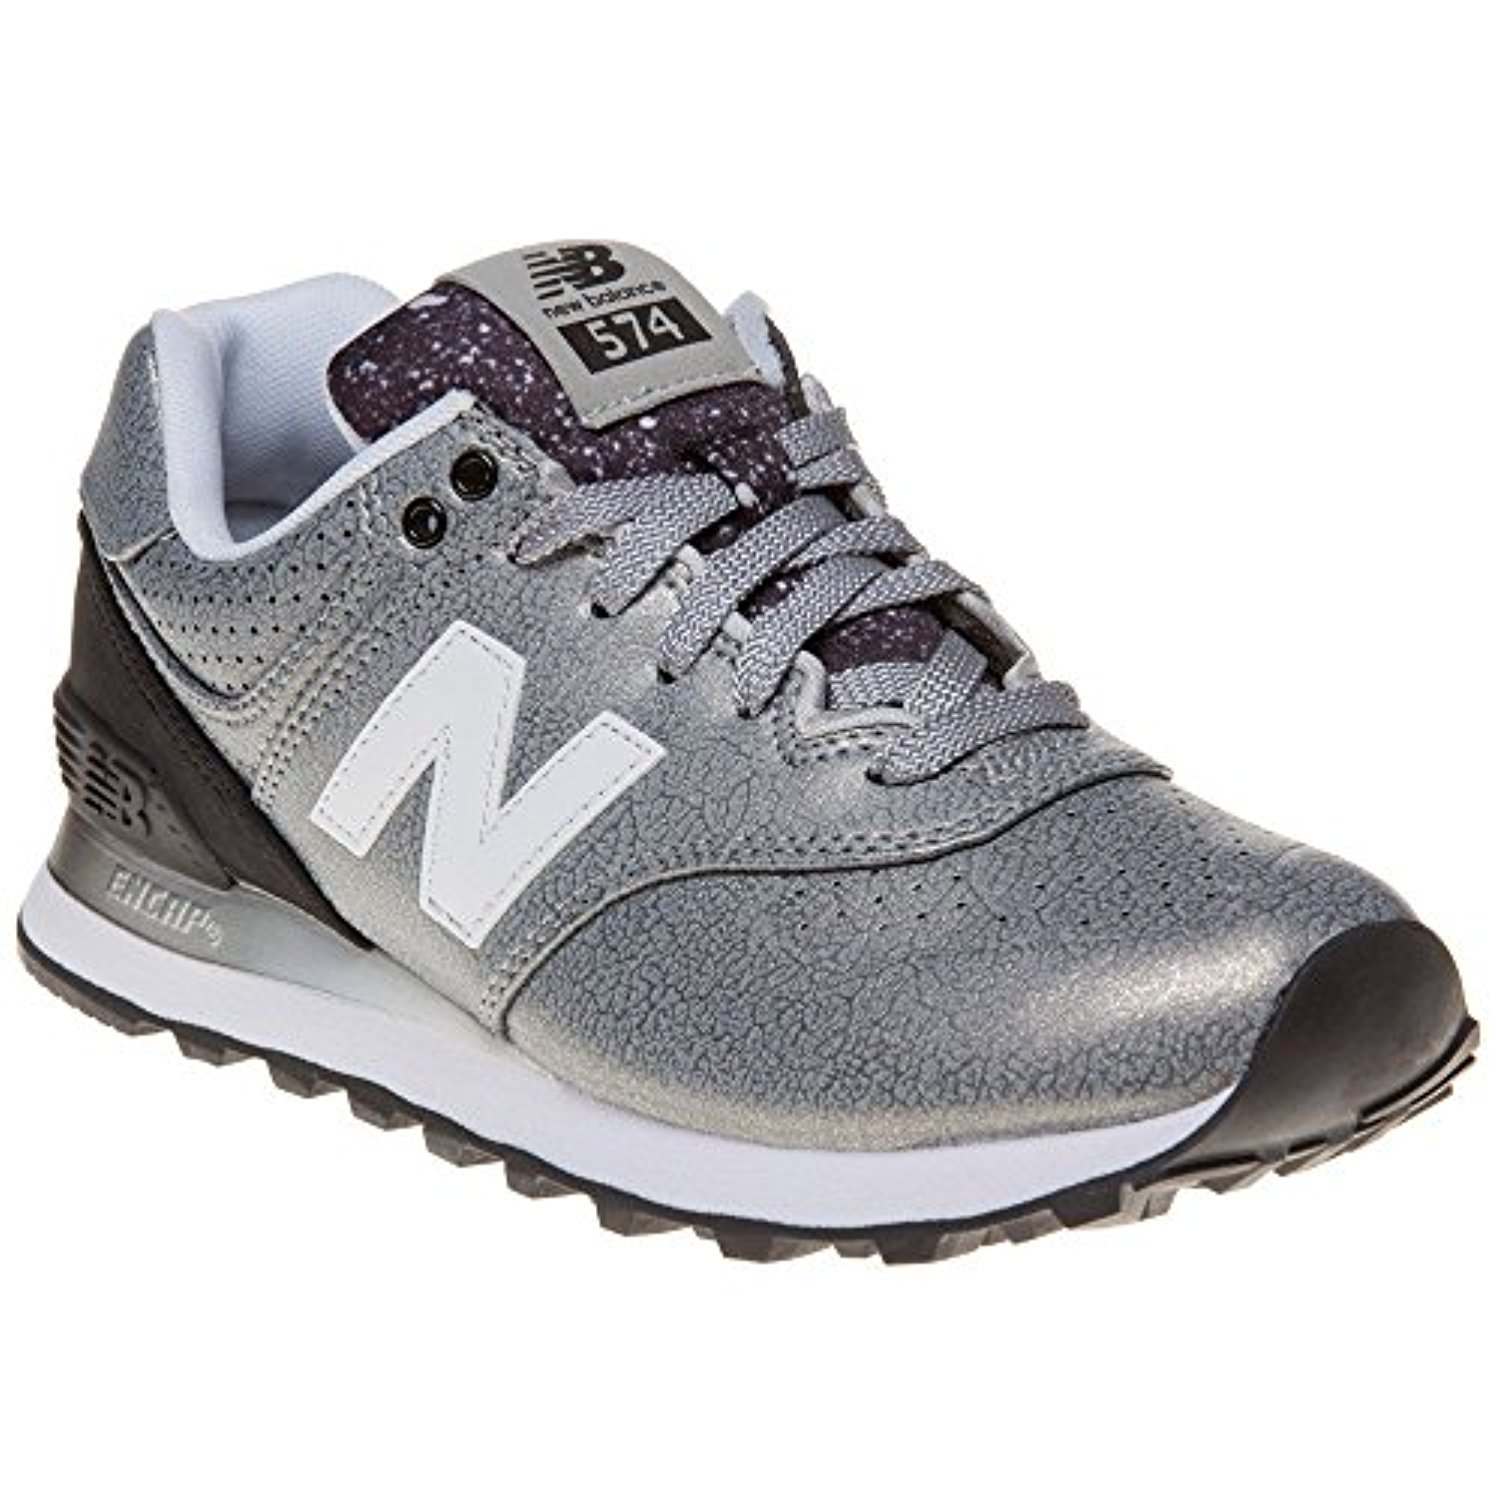 new balance 574 chaussures de running entrainement femme 2018 soldes allure chaussure. Black Bedroom Furniture Sets. Home Design Ideas